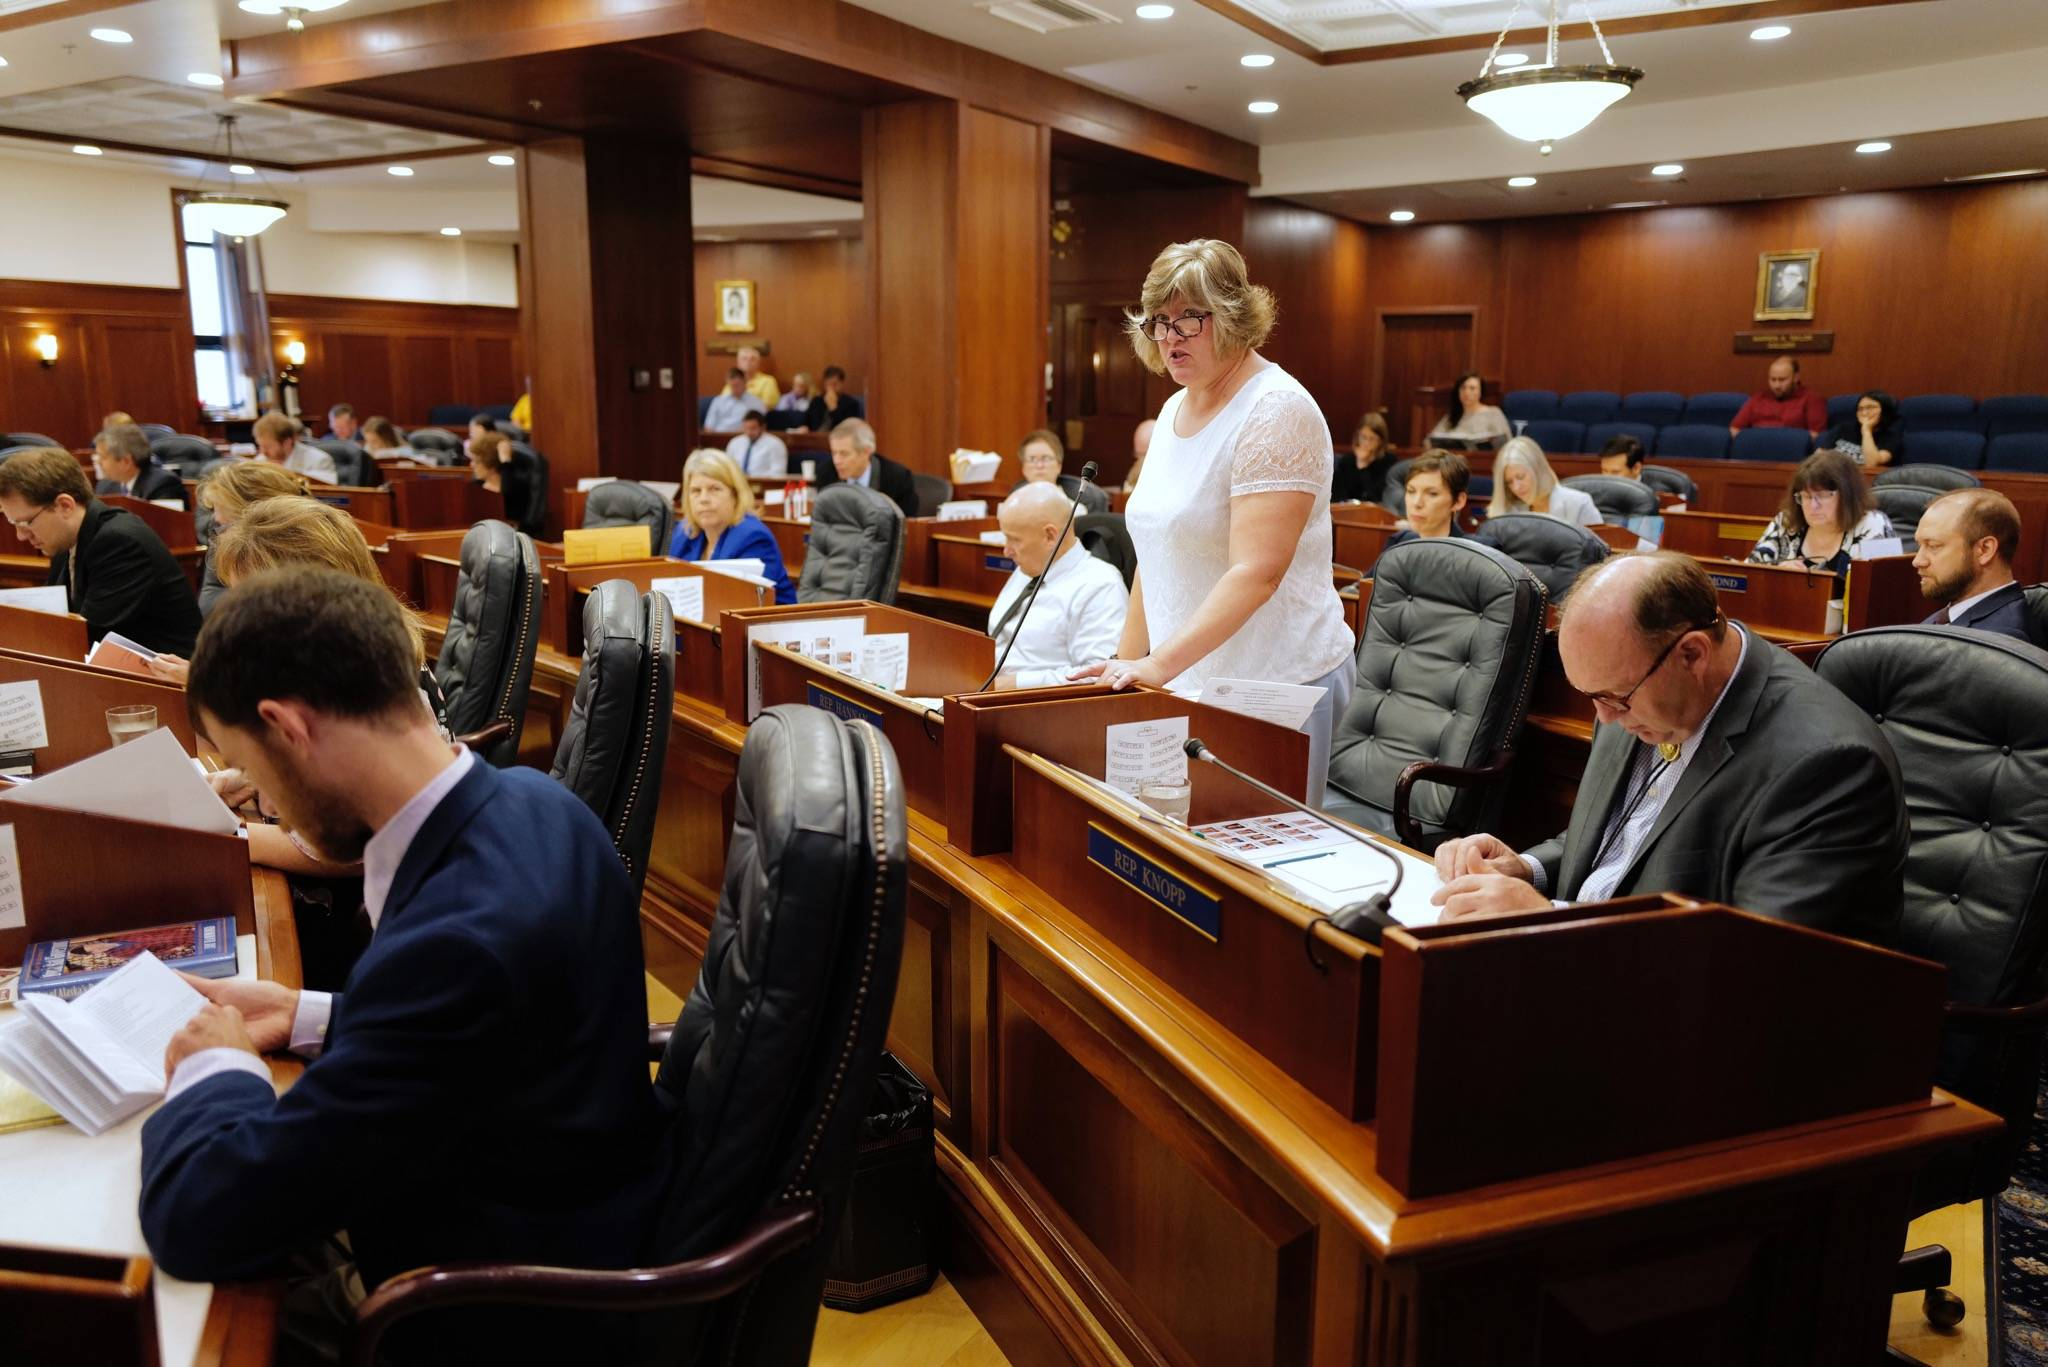 Rep. Sara Hannan, D-Juneau, speaks in favor of HB 2002 on a reconsideration vote at the Capitol on Monday, July 22, 2019. (Michael Penn | Juneau Empire)